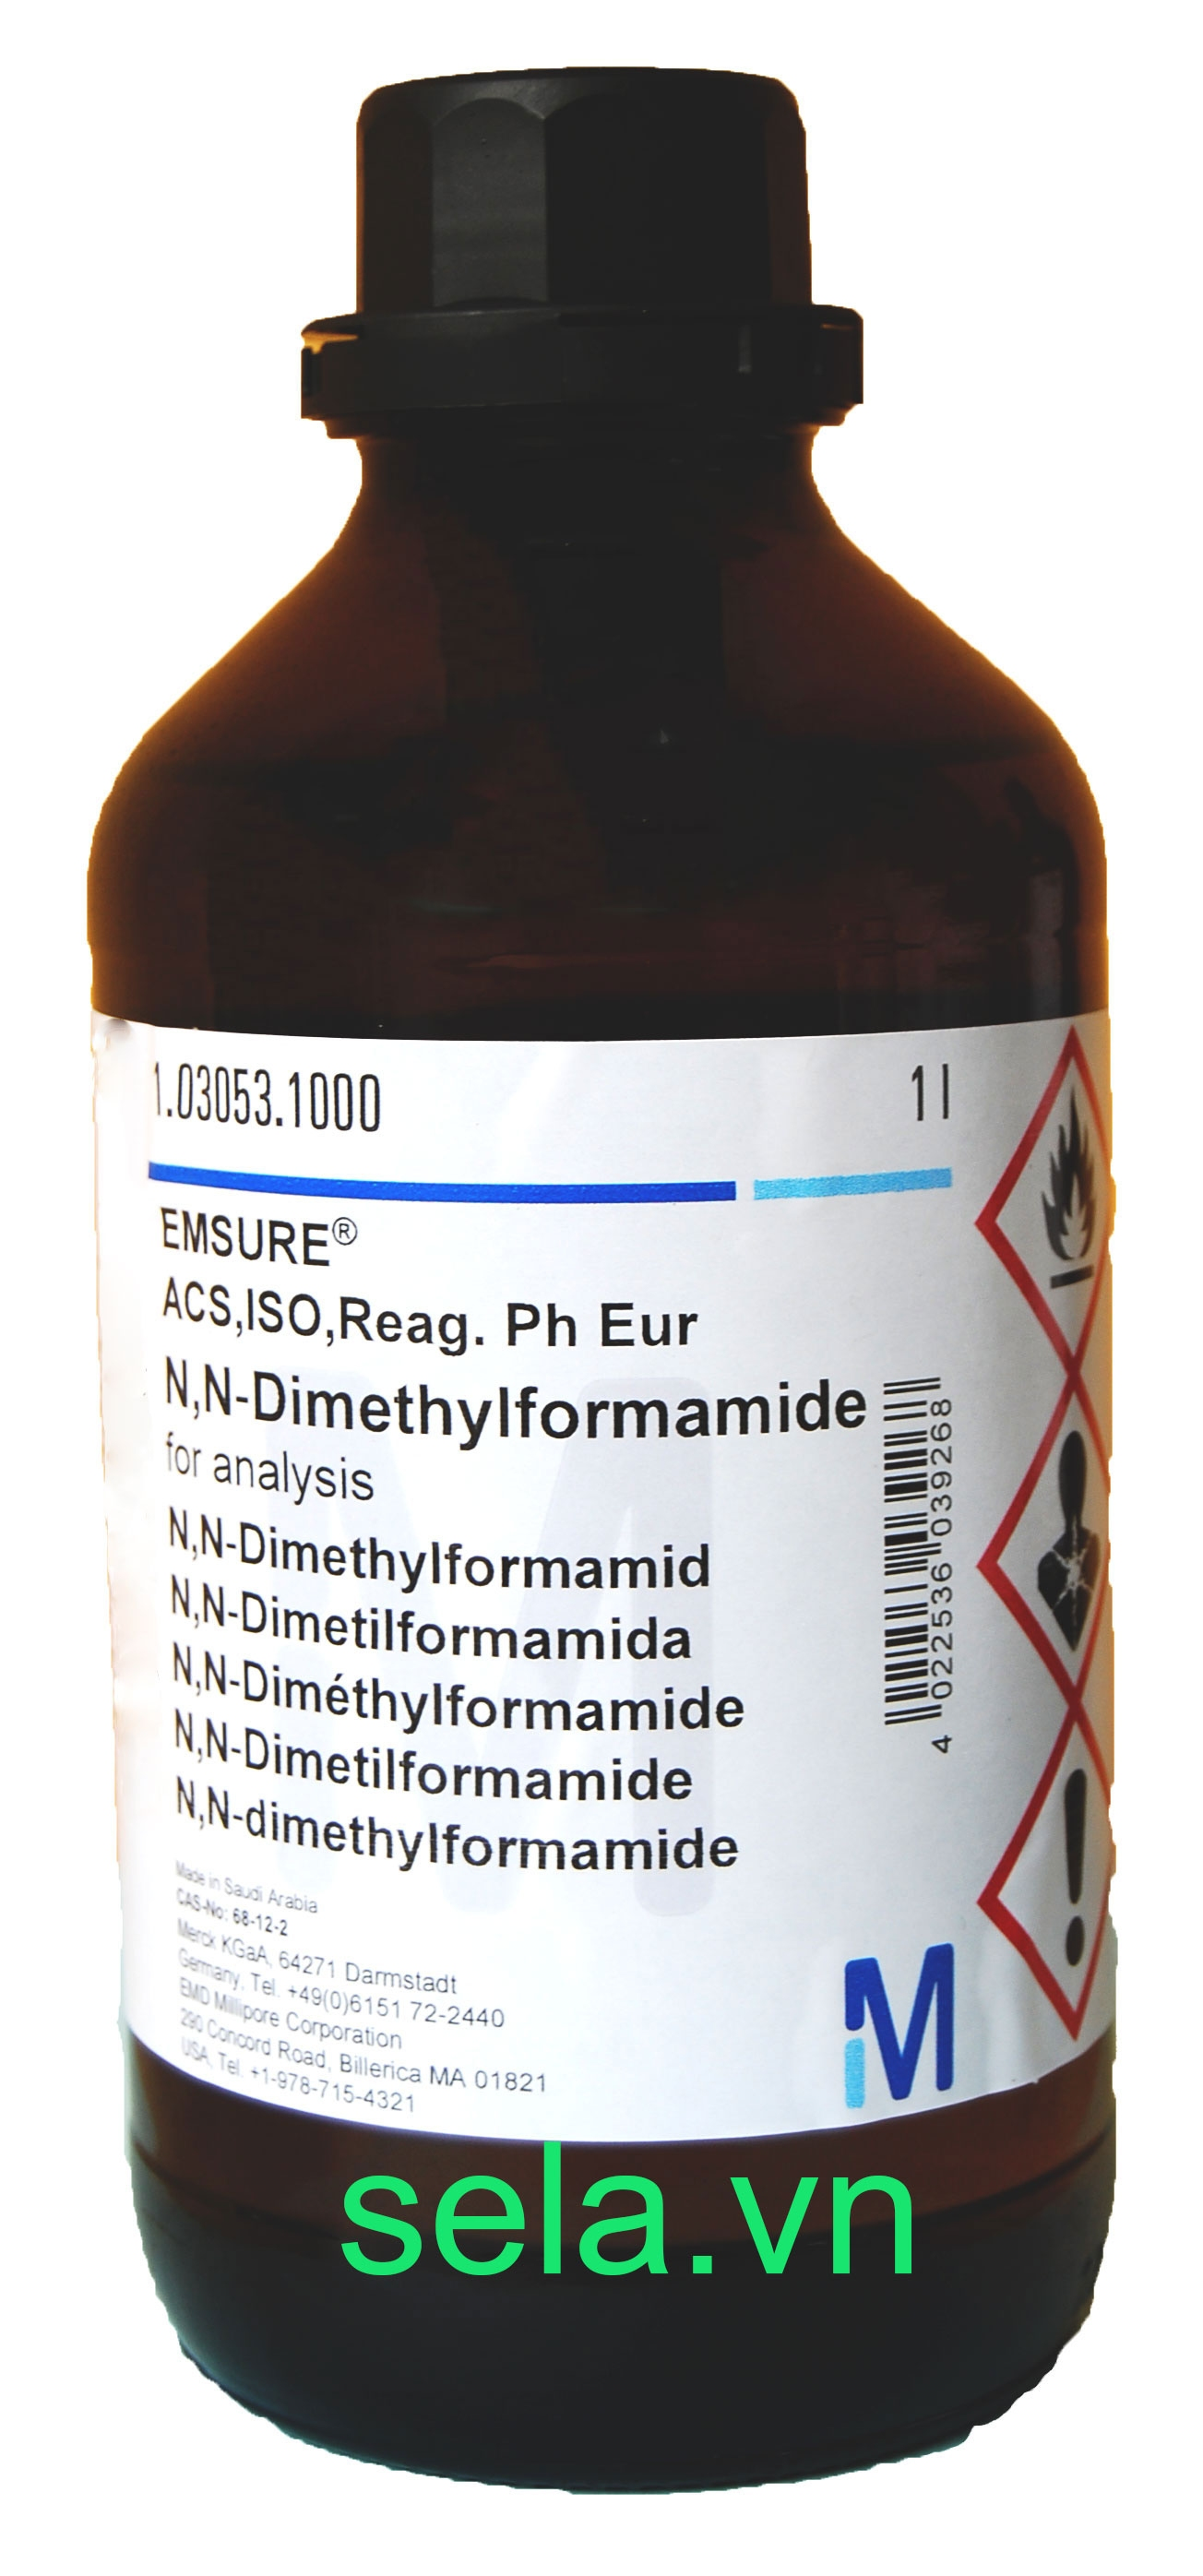 N,N-Dimethylformamide for analysis EMSURE® ACS,ISO,Reag. Ph Eur